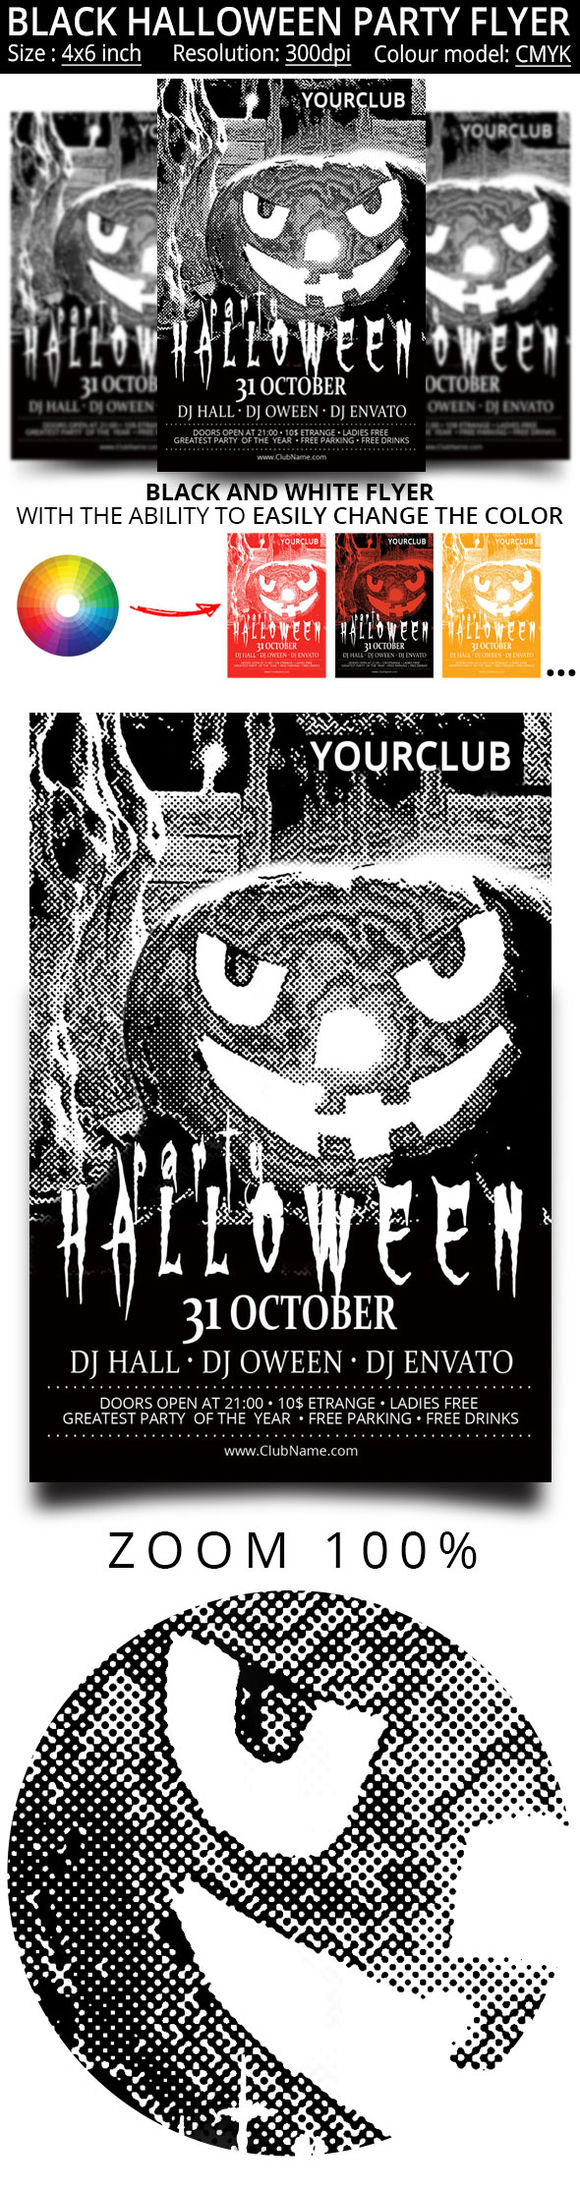 Black And White Flyer For The Hallow by Oloreon is available from CreativeMarket for $5.